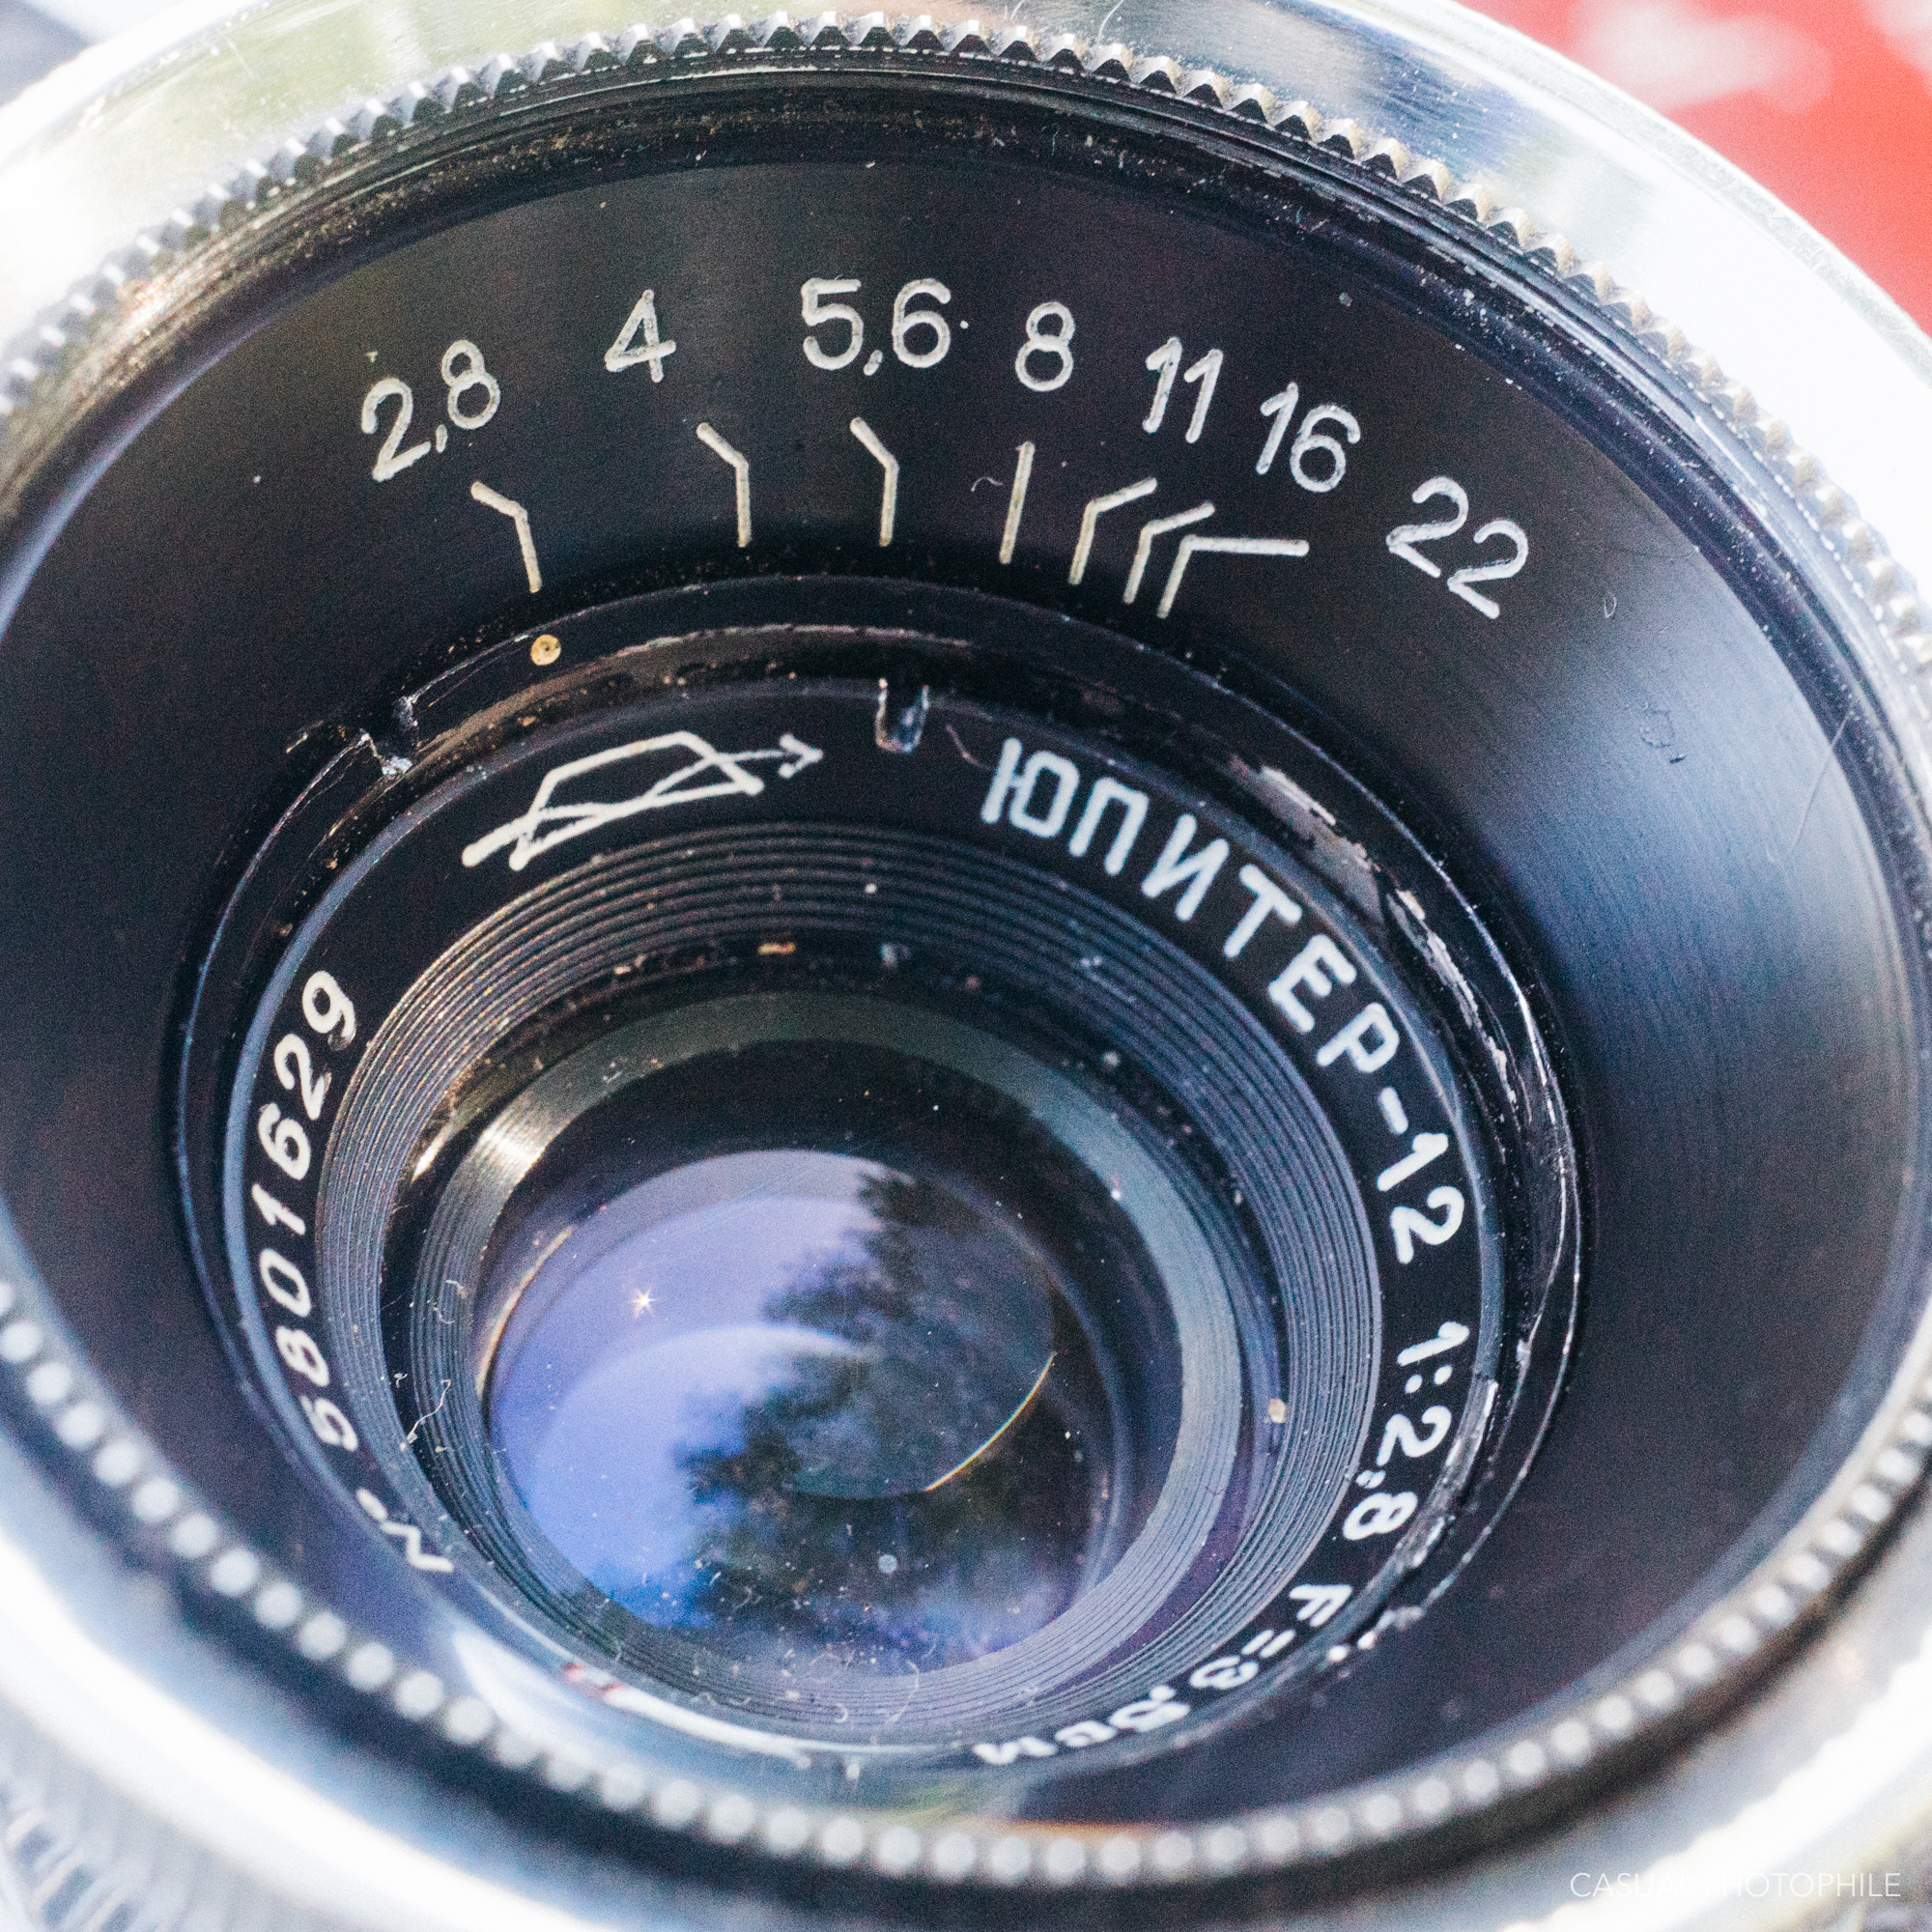 Jupiter-12 35mm F/2 8 Lens Review - Playing Russian Roulette